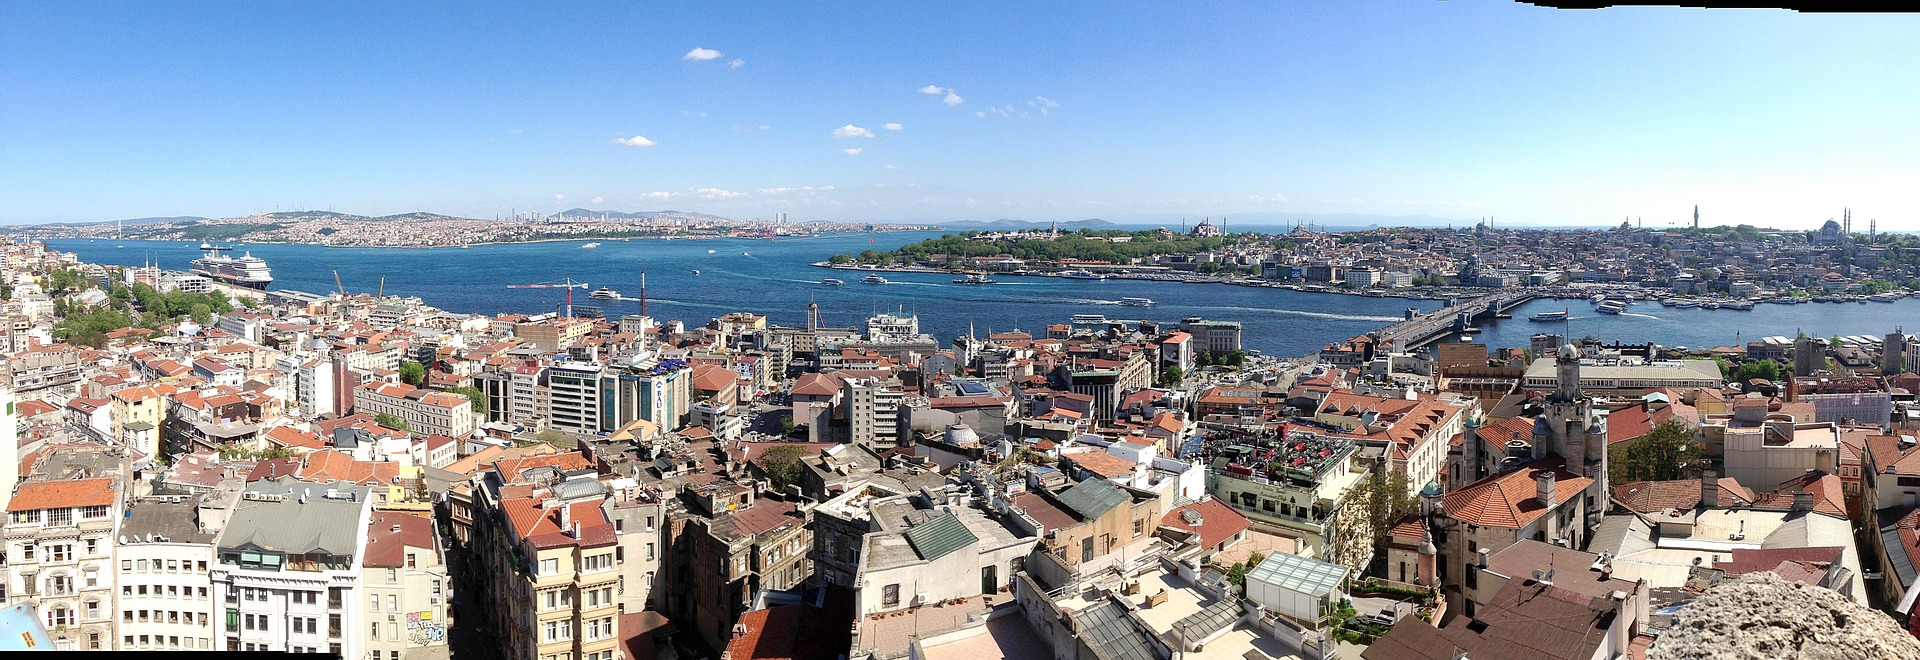 The Bosphorus in Istanbul, Turkey